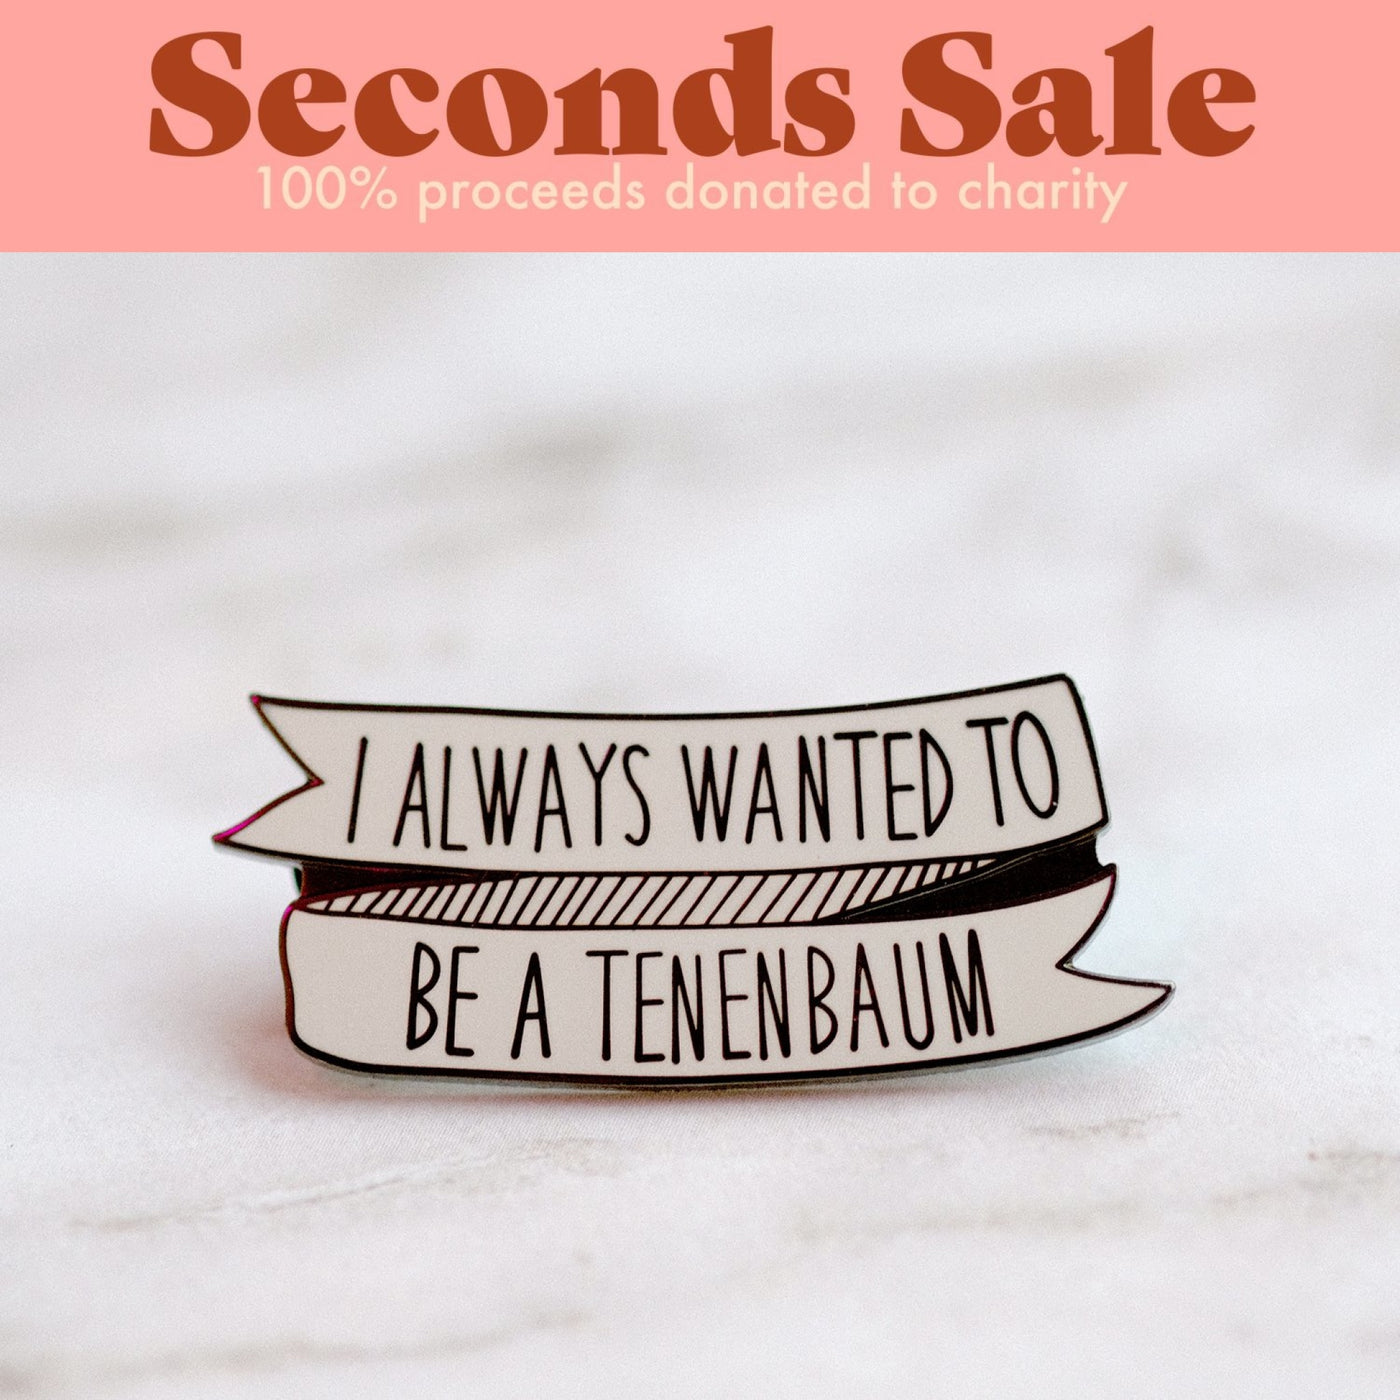 Seconds Sale - I Always Wanted To Be A Tenenbaum Enamel Pin